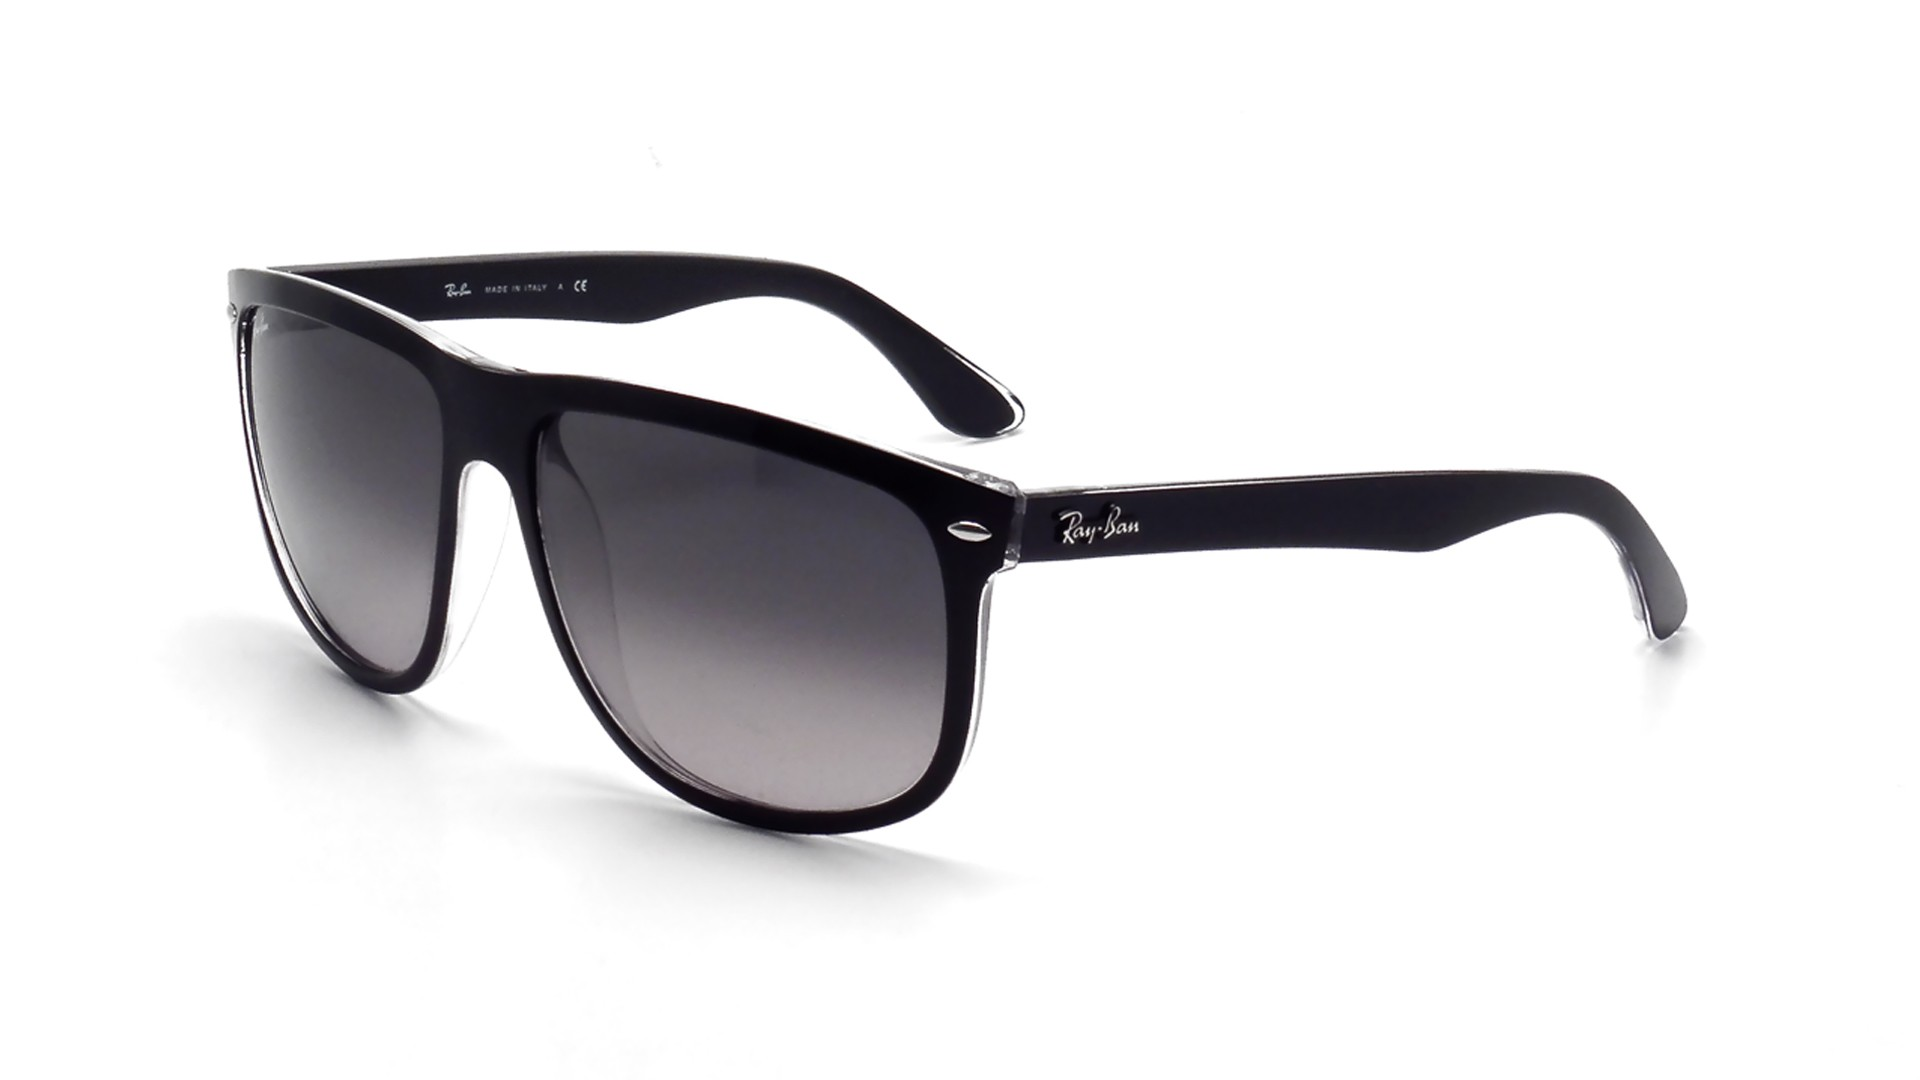 549ecf4604 Sunglasses Ray-Ban RB4147 6039 71 60-15 Black Large Gradient